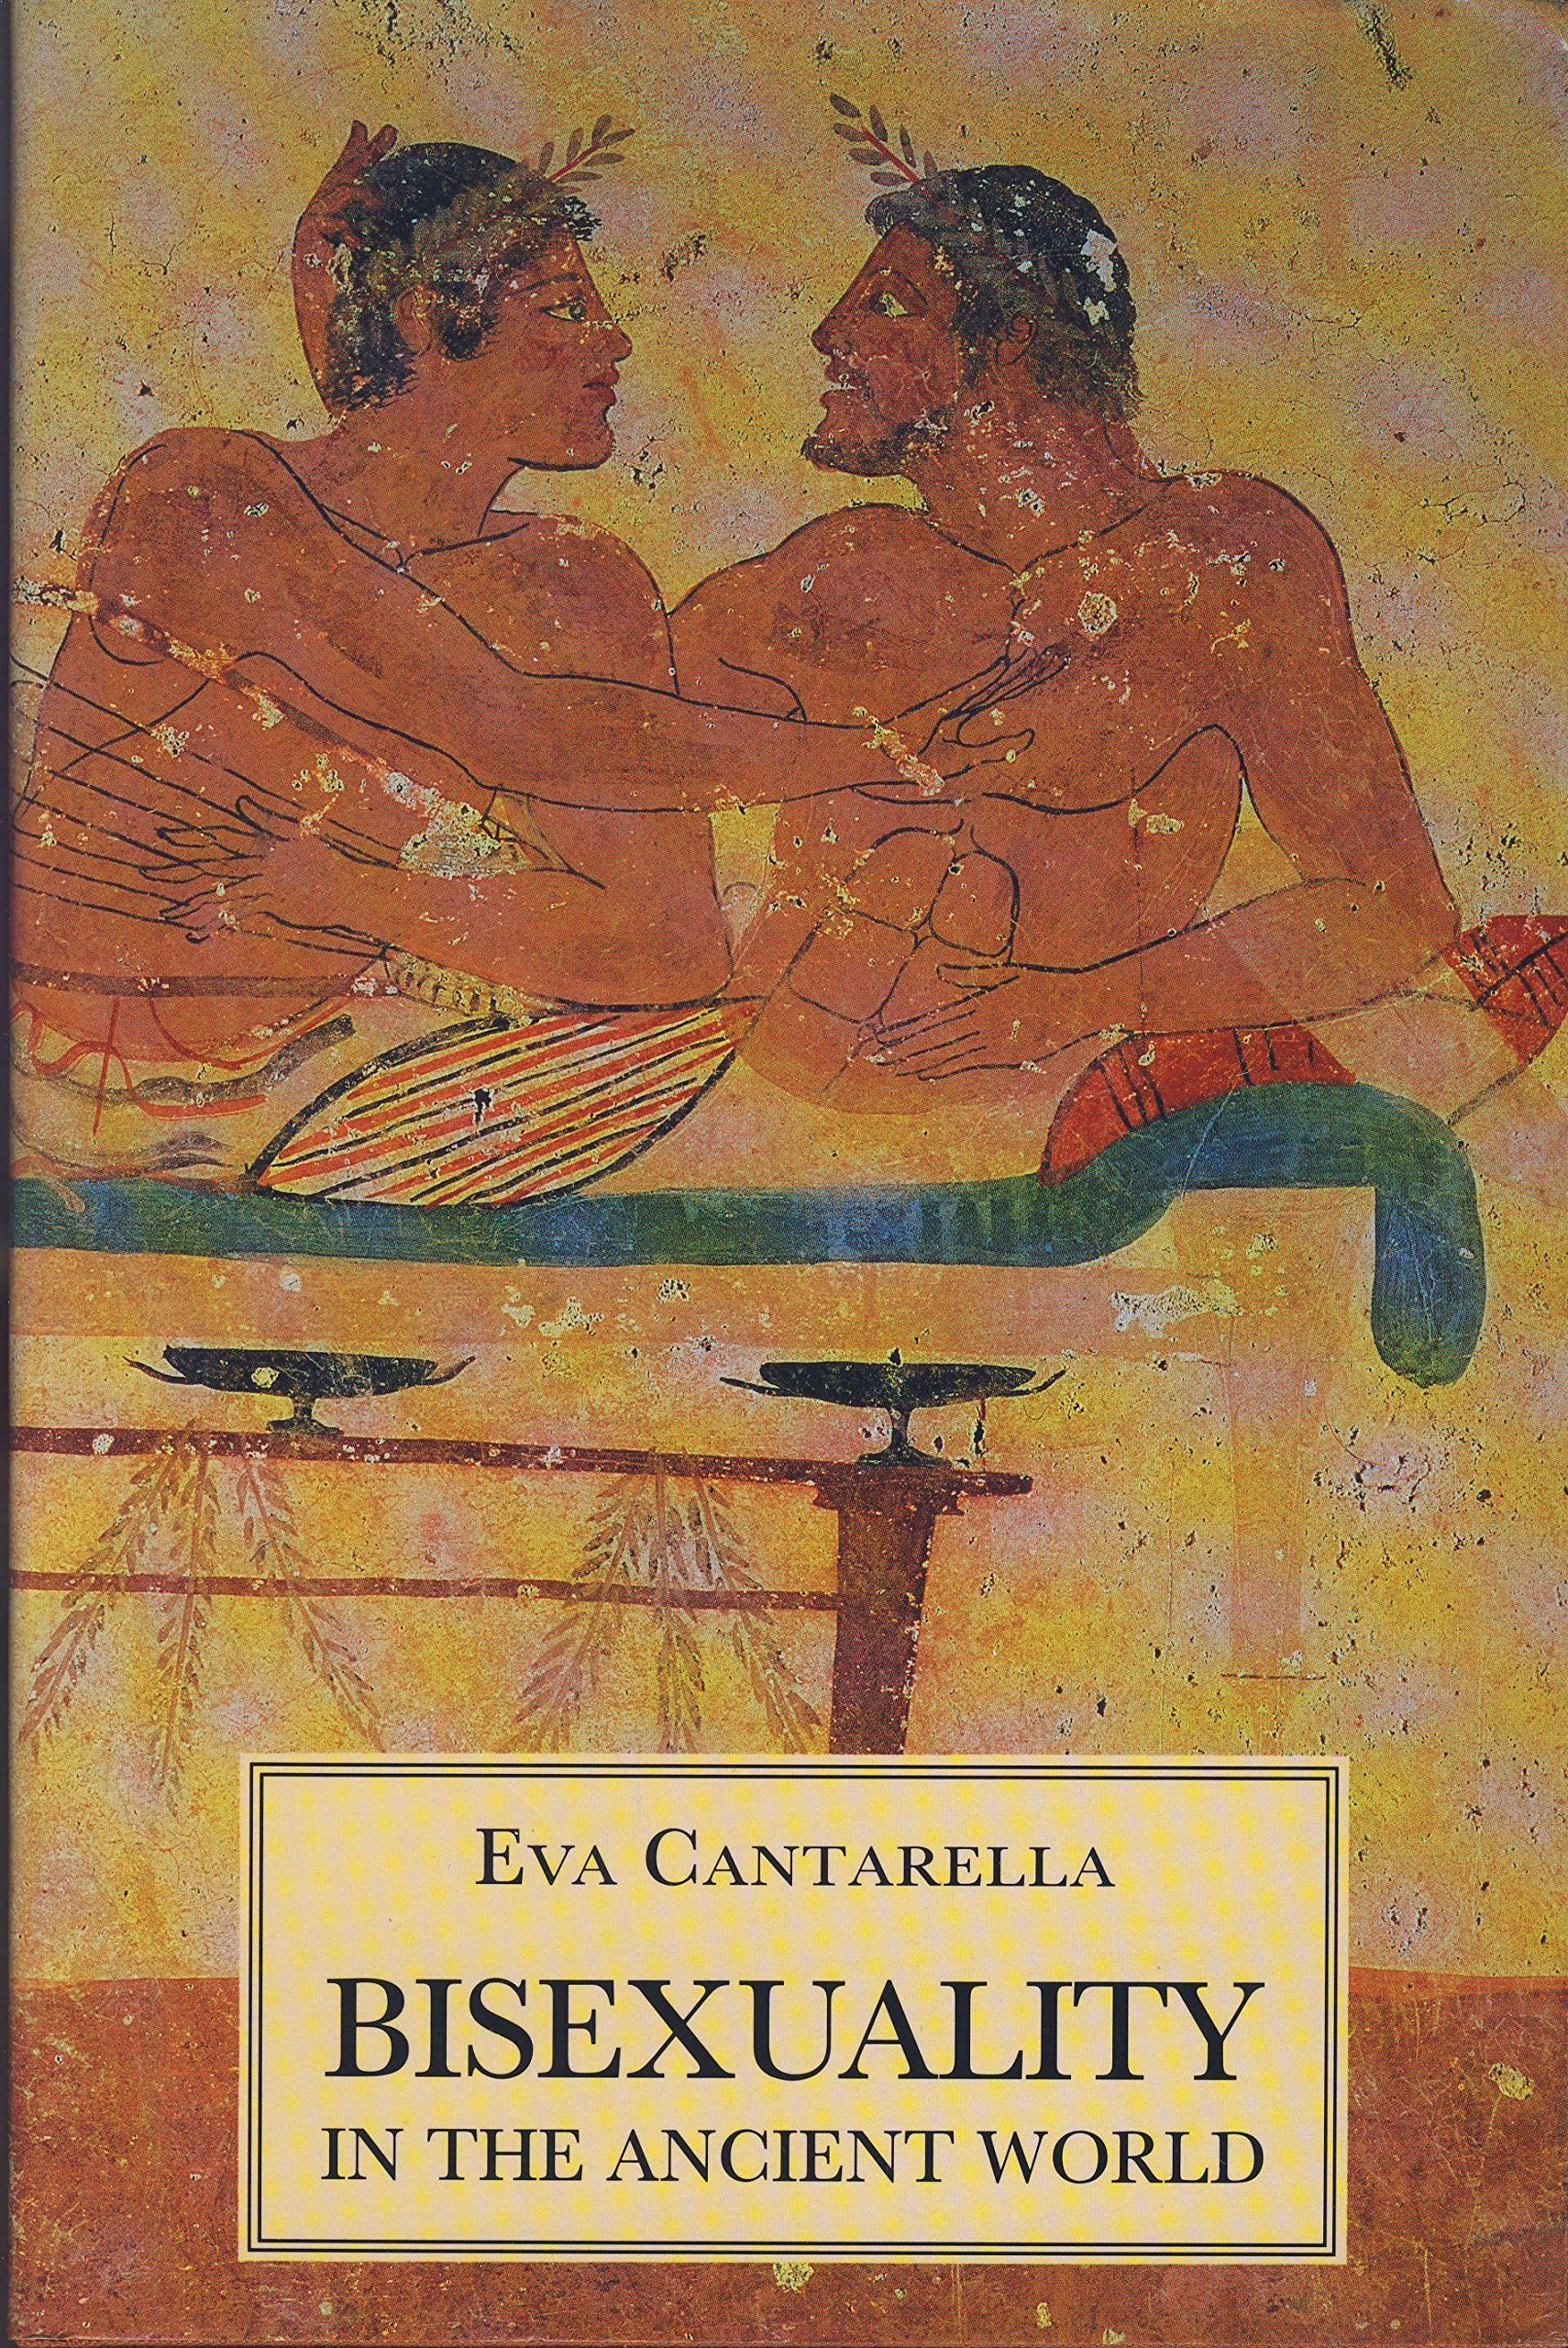 Eva cantarella bisexuality in the ancient world